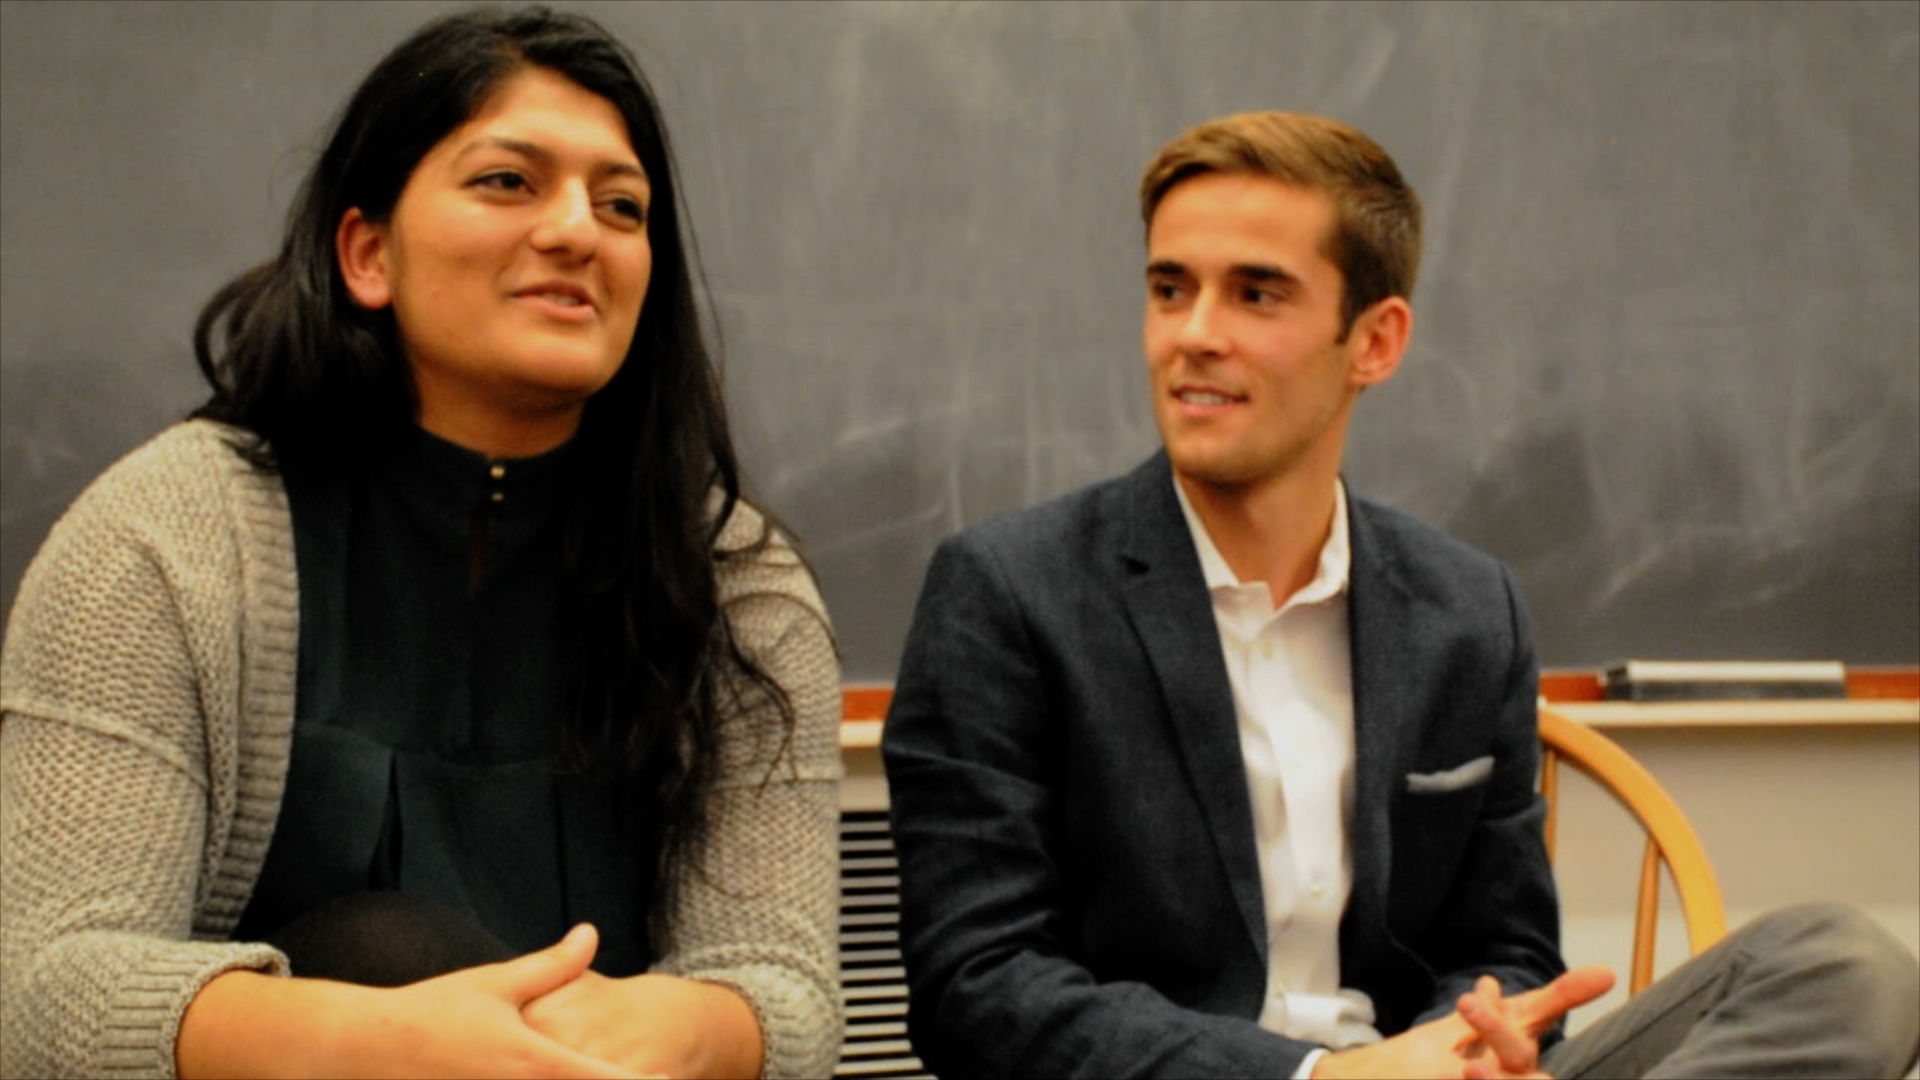 Shaiba Rather '17 of Cabot House and Daniel V. Banks '17 of Dunster Houses speak at the UC-Crimson Crossfire Debate on Saturday evening.